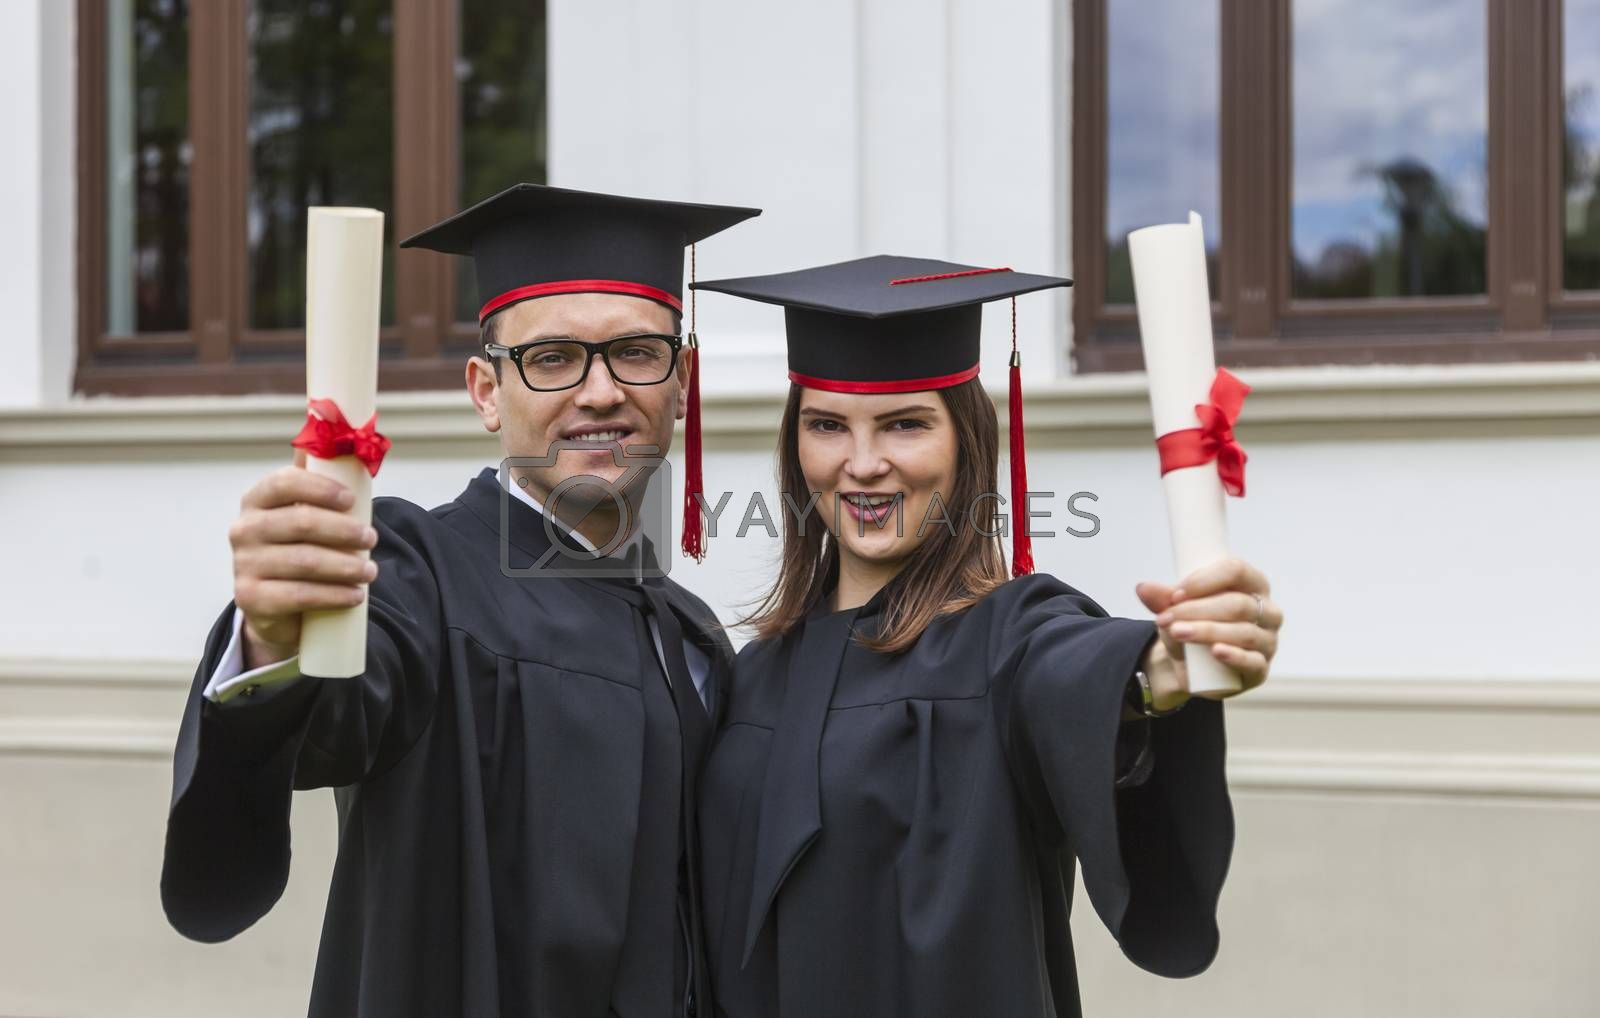 Happy couple in the graduation day proudly holding their certificates in front of the University wall.